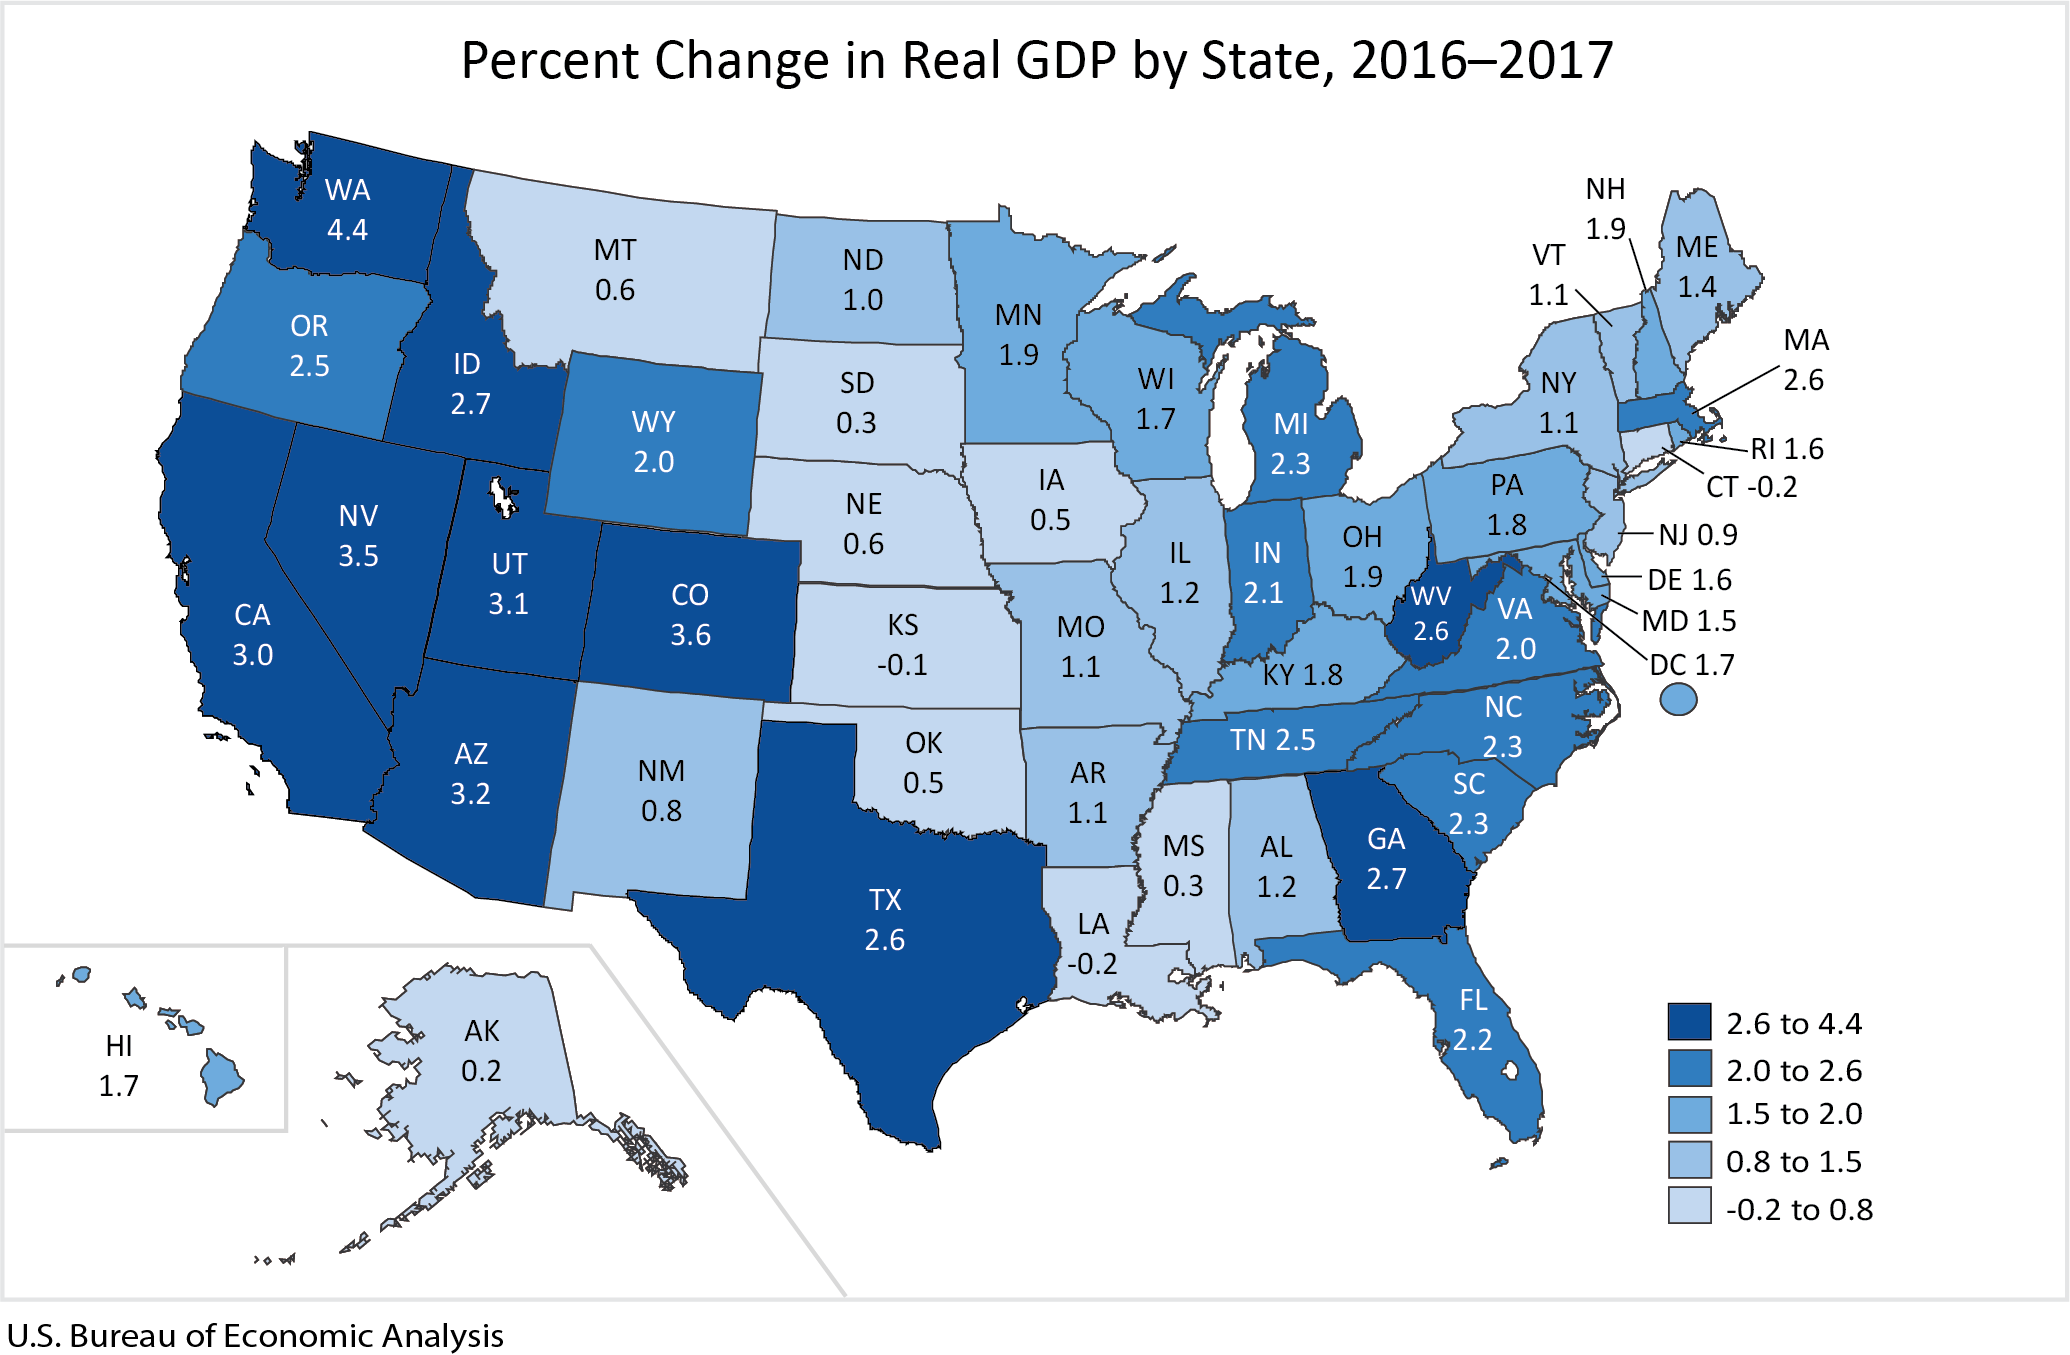 Percent Change in Real GDP by State